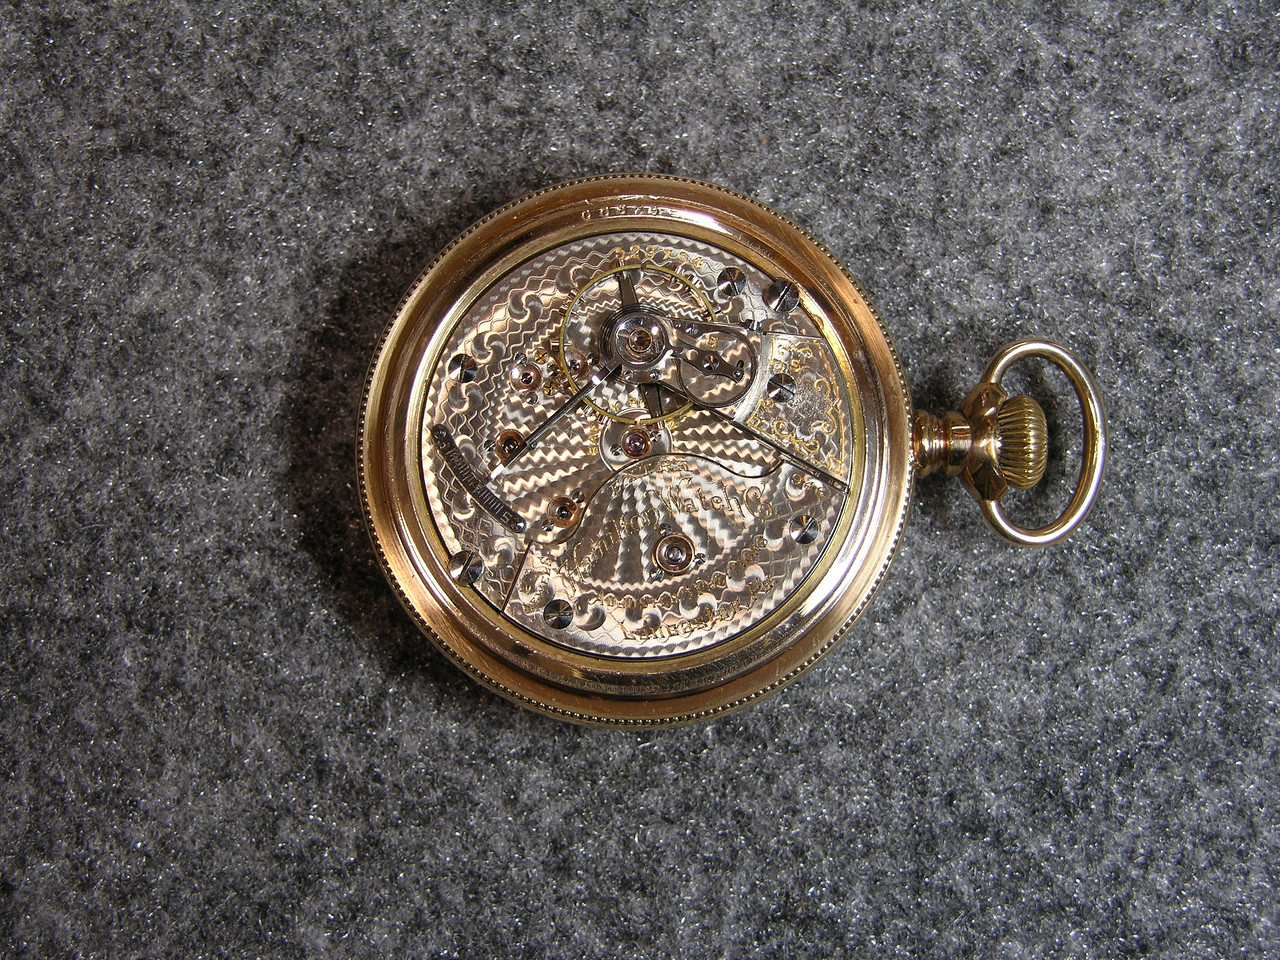 946 movement, SN 523704                        23 jewels, produced 1904-1921                 total production 10,692